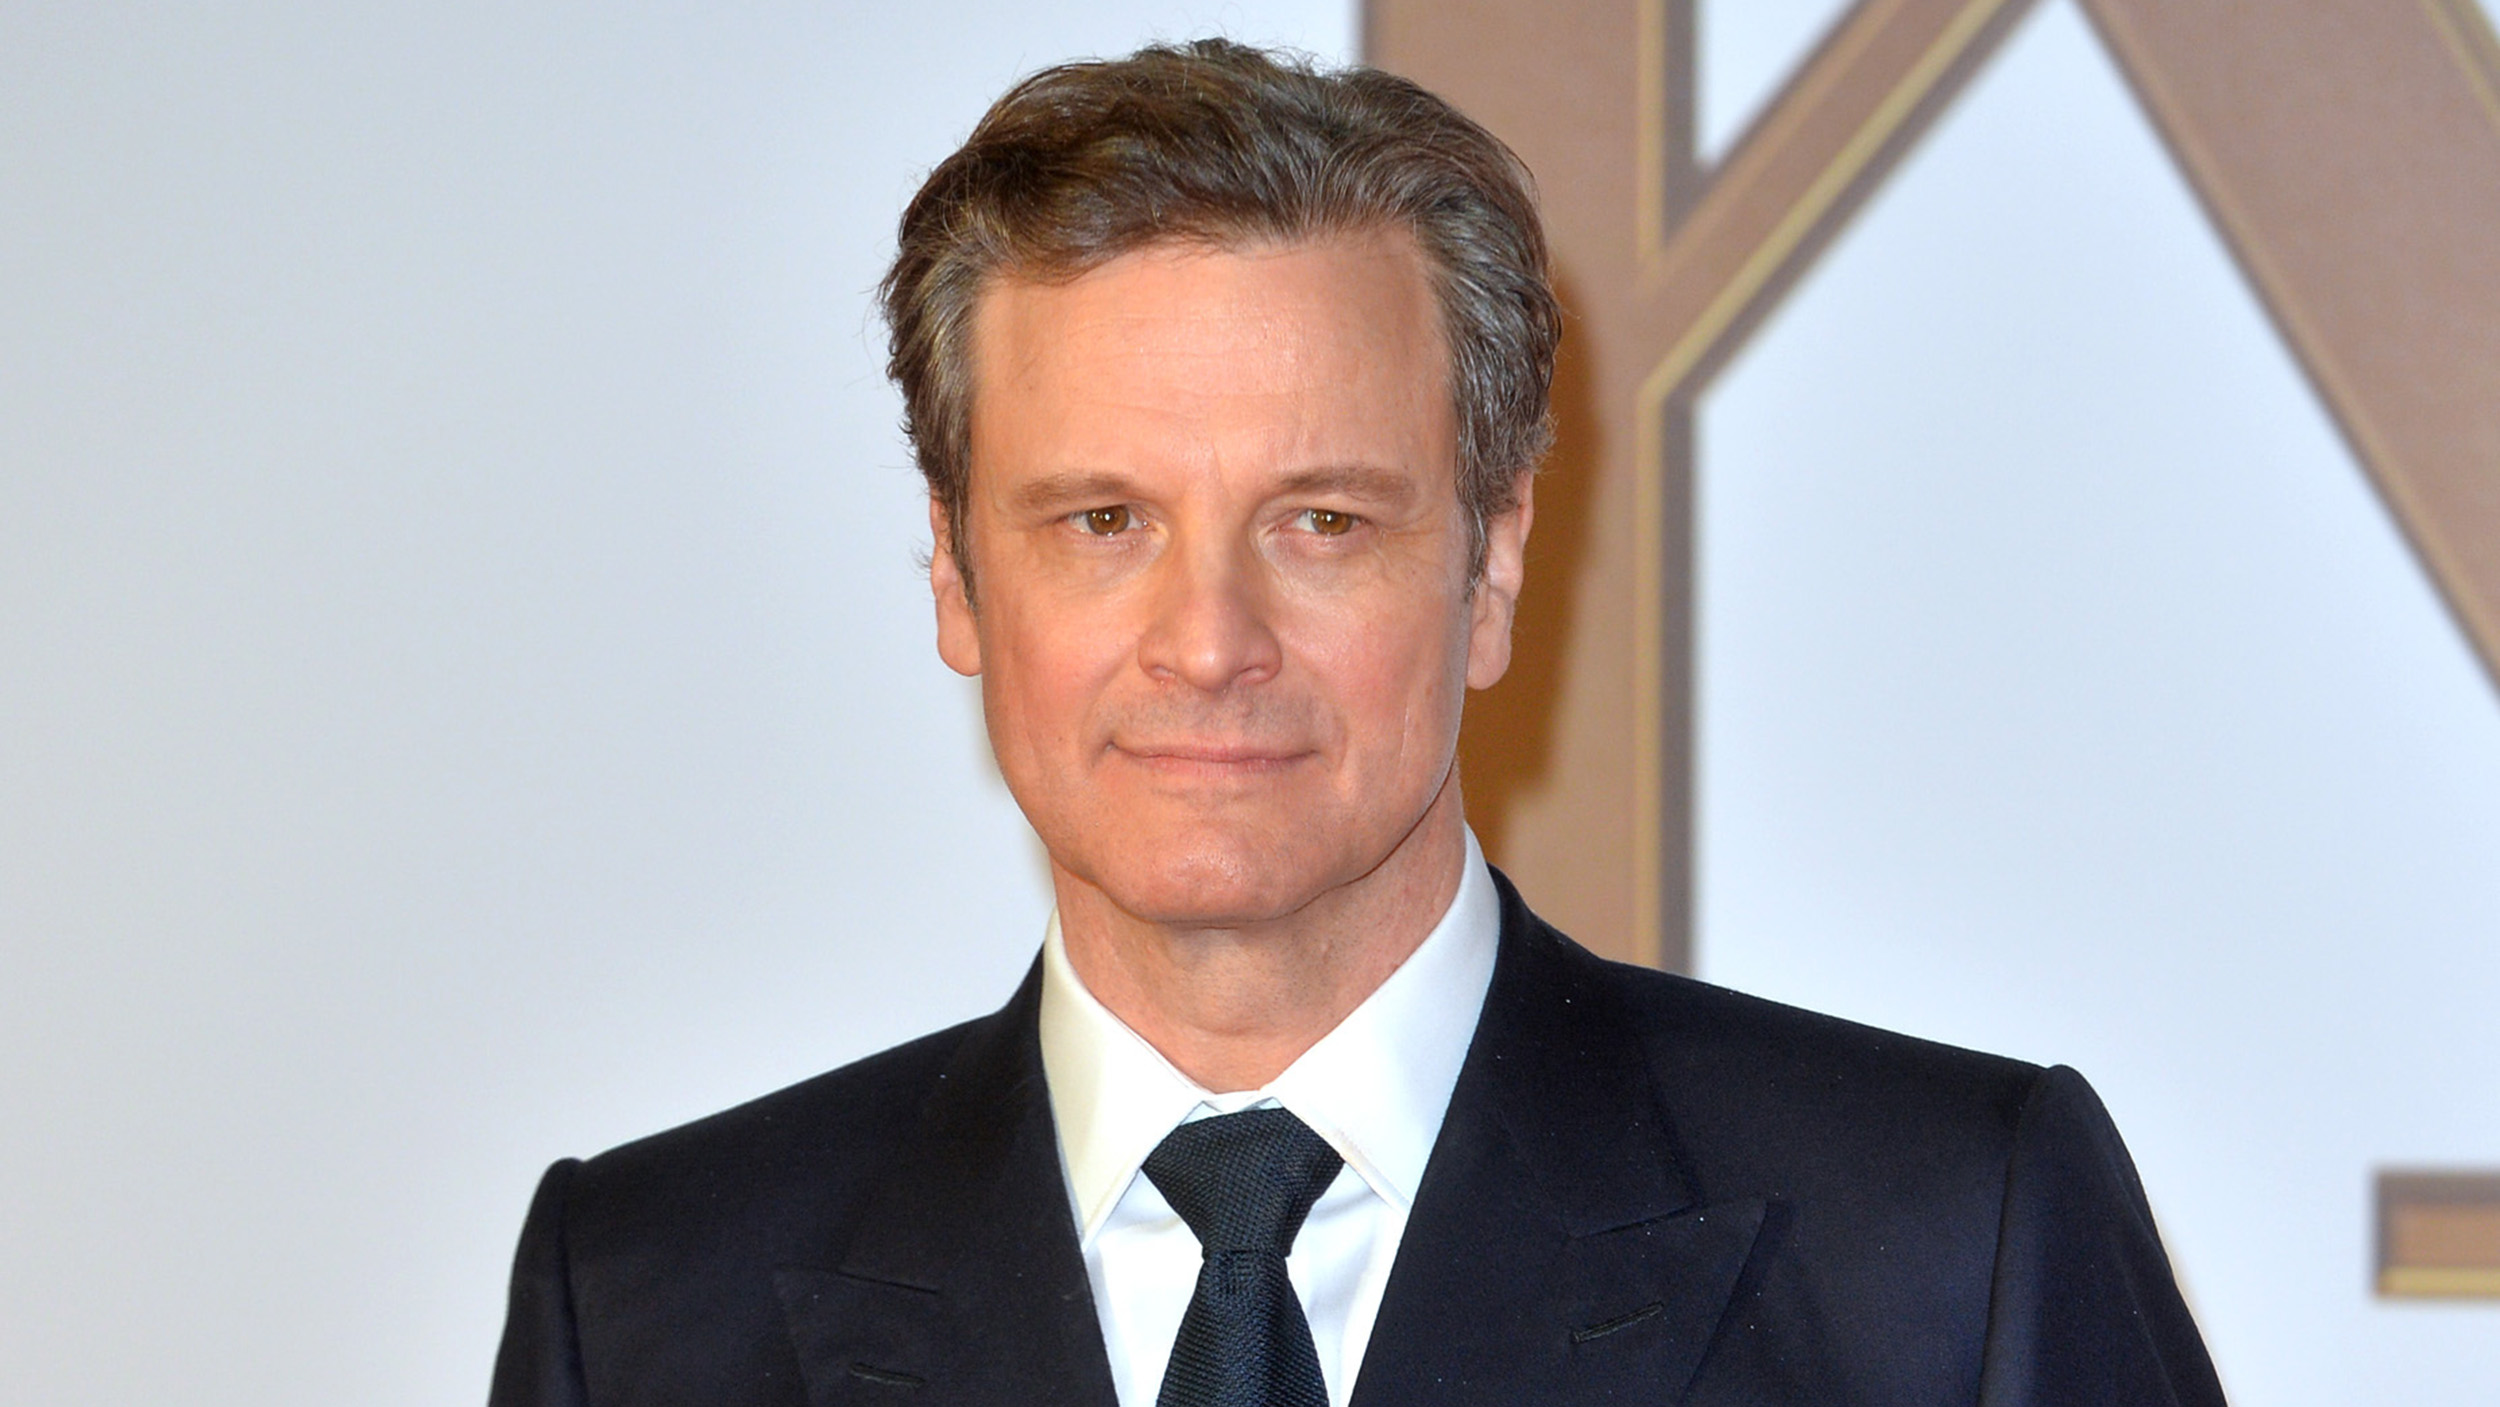 Colin Firth Backgrounds, Compatible - PC, Mobile, Gadgets| 2500x1407 px